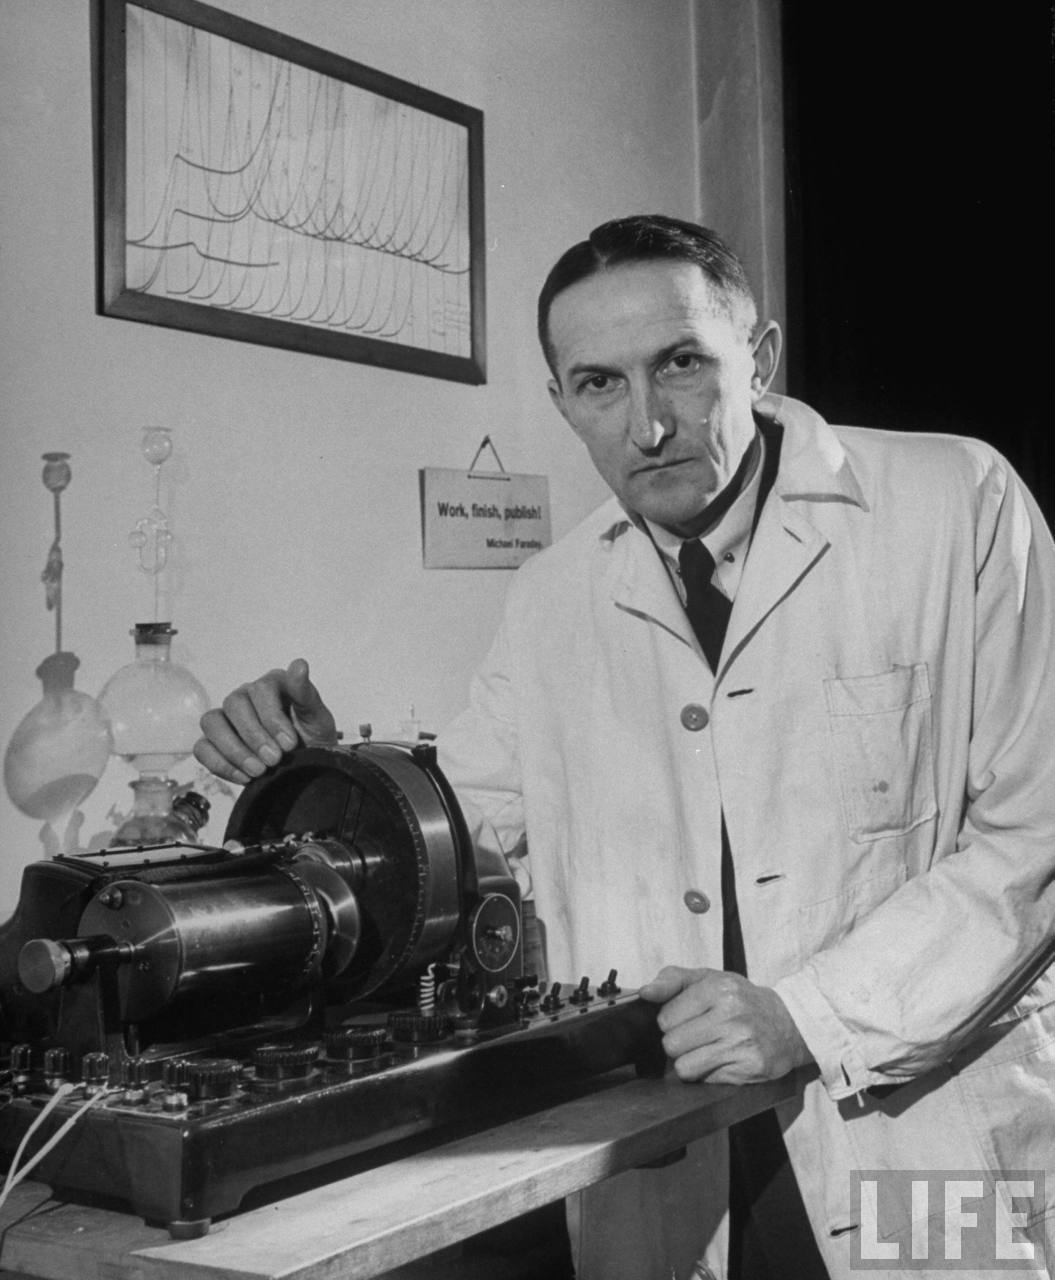 Portrait of Dr. Jaroslav Heyrovsky, head of Physical Chemistry at Charles University, with his invention the polarograph, a device for the microanalysis of various solutions used in medicine, metallurgy, food study and other branches of science.